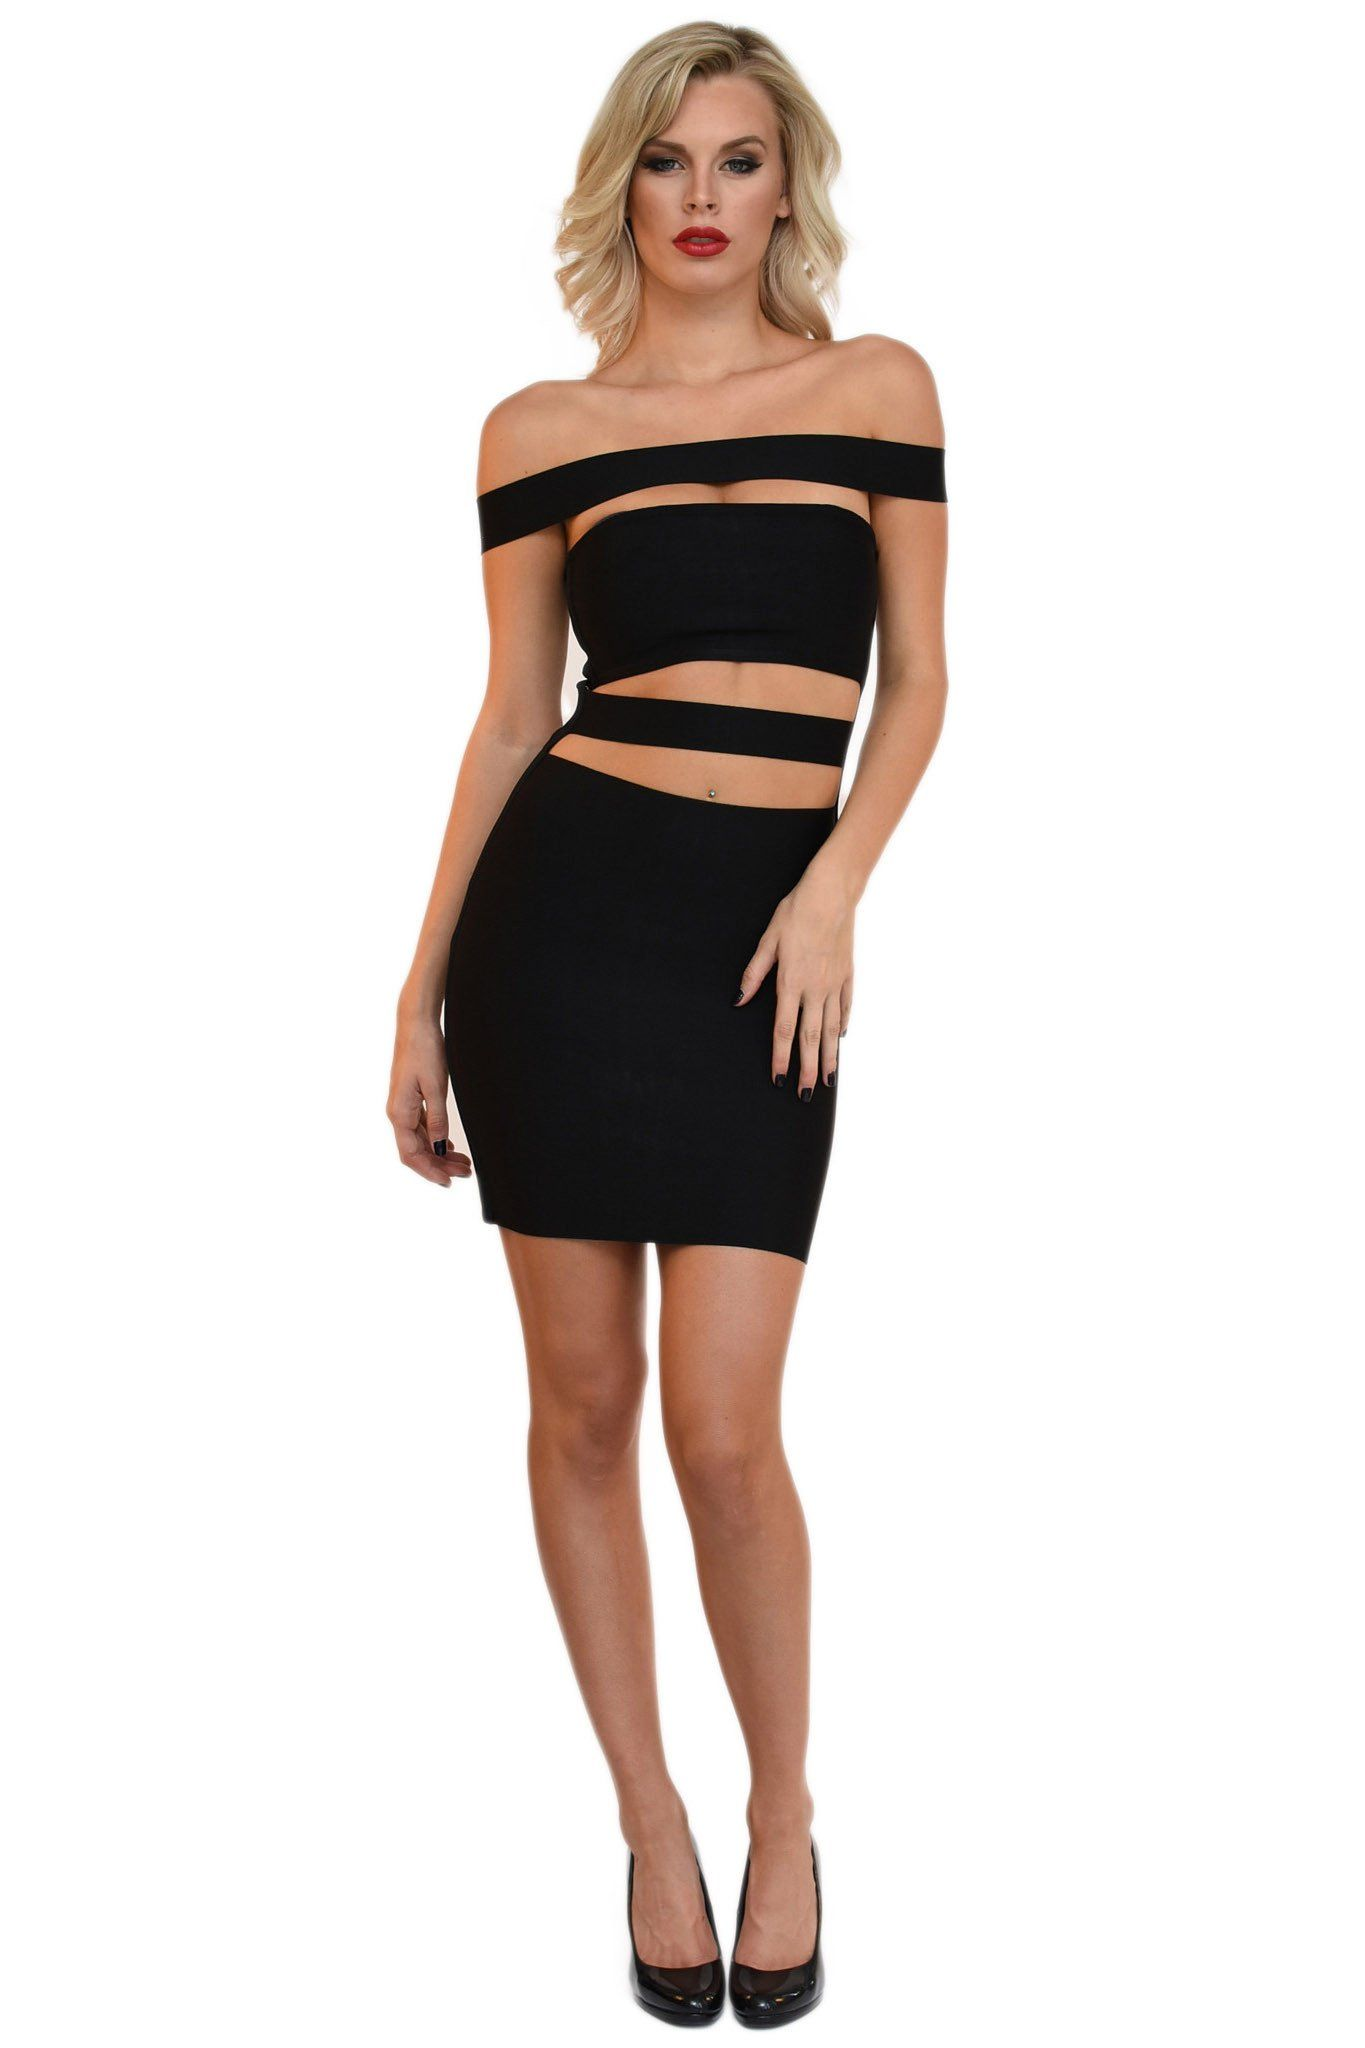 Front of Kylie Jenner inspired black mini bandage dress with horizontal off-the-shoulder band and panel cutouts above the chest and around the waist